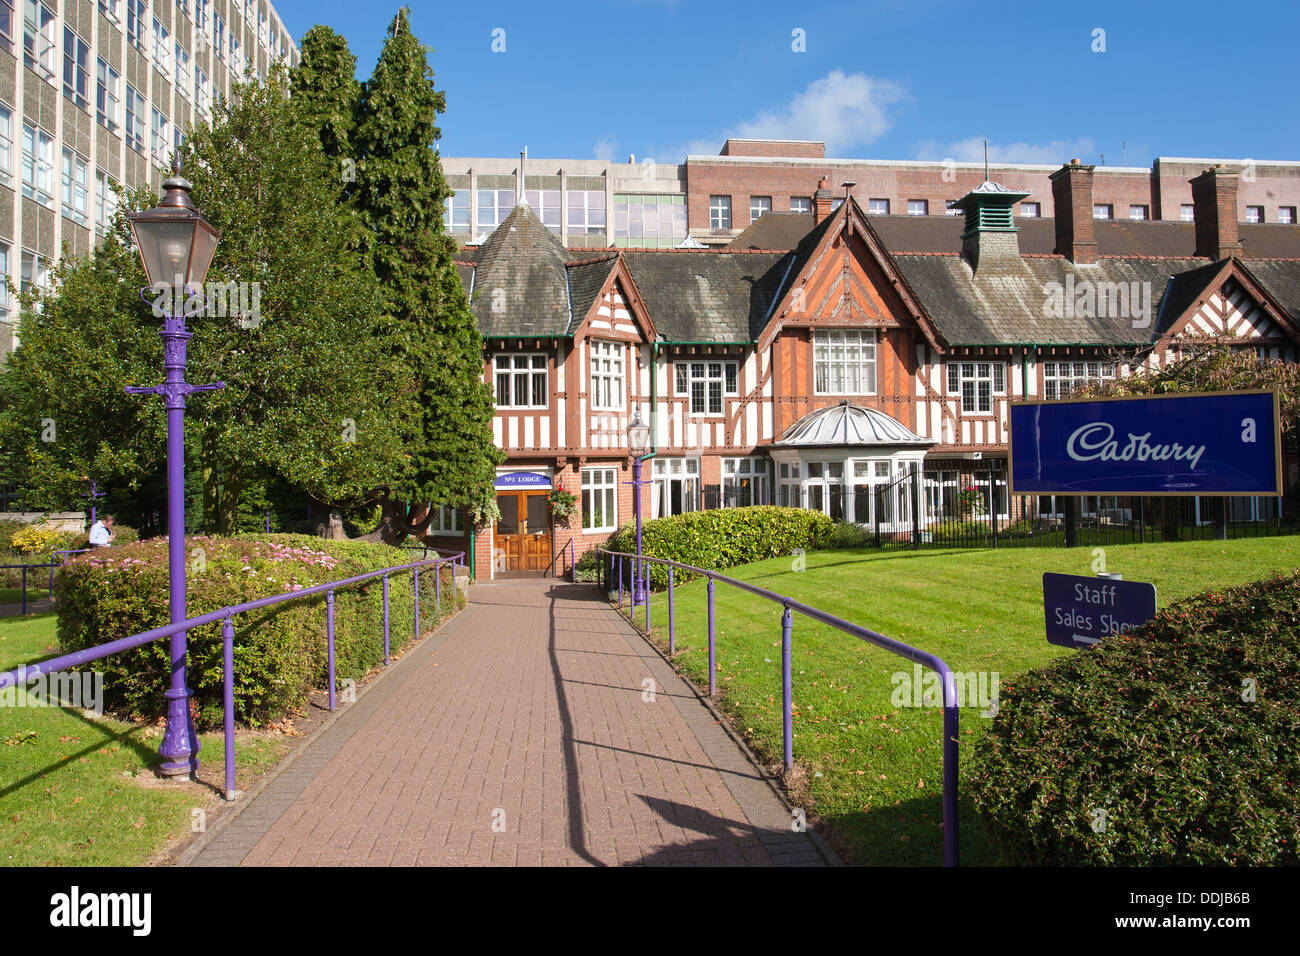 Bournville Village The Home Of The Cadbury Chocolate Factory Founded By George Cadbury In 1879 England United Kingdom